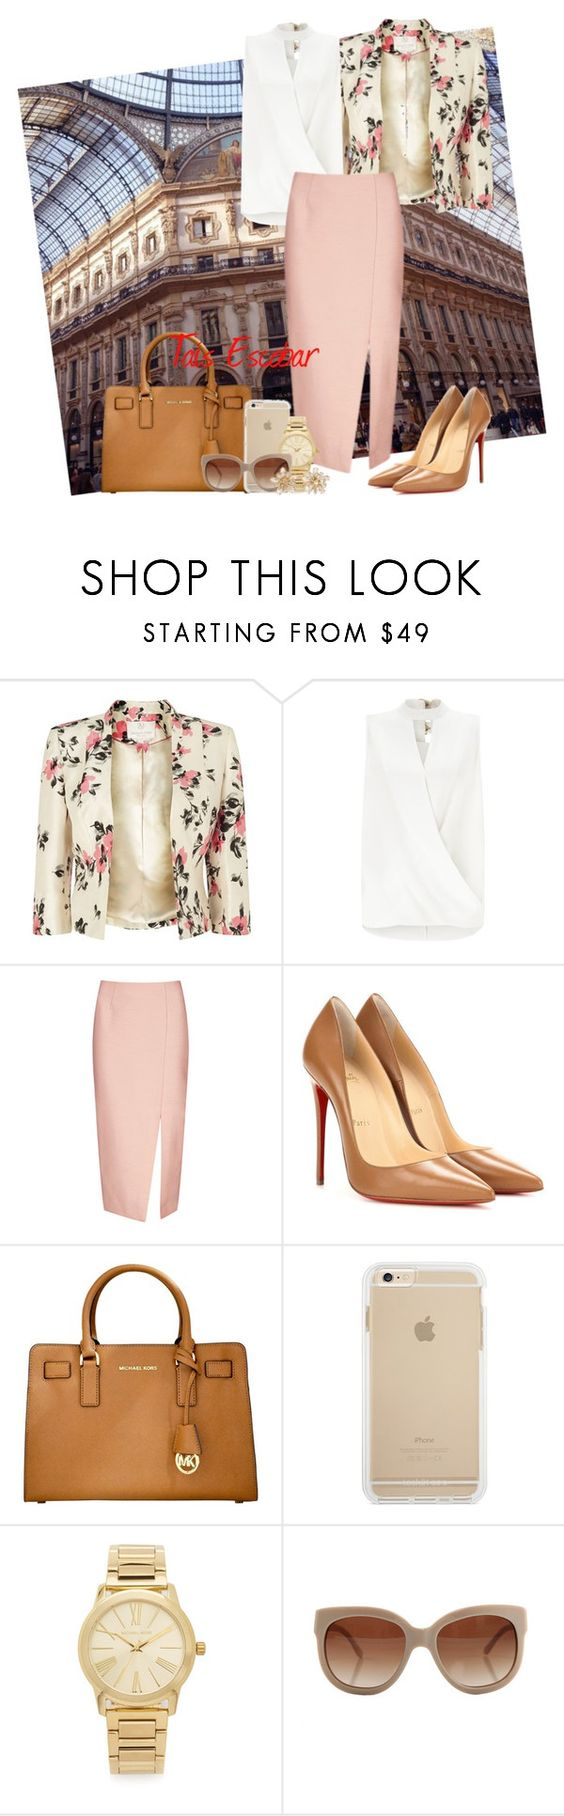 """Monday & Flowers on town "" by tais-escobar ❤ liked on Polyvore featuring Jacques Vert, Miss Selfridge, C/MEO COLLECTIVE, Christian Louboutin, Michael Kors and STELLA McCARTNEY"